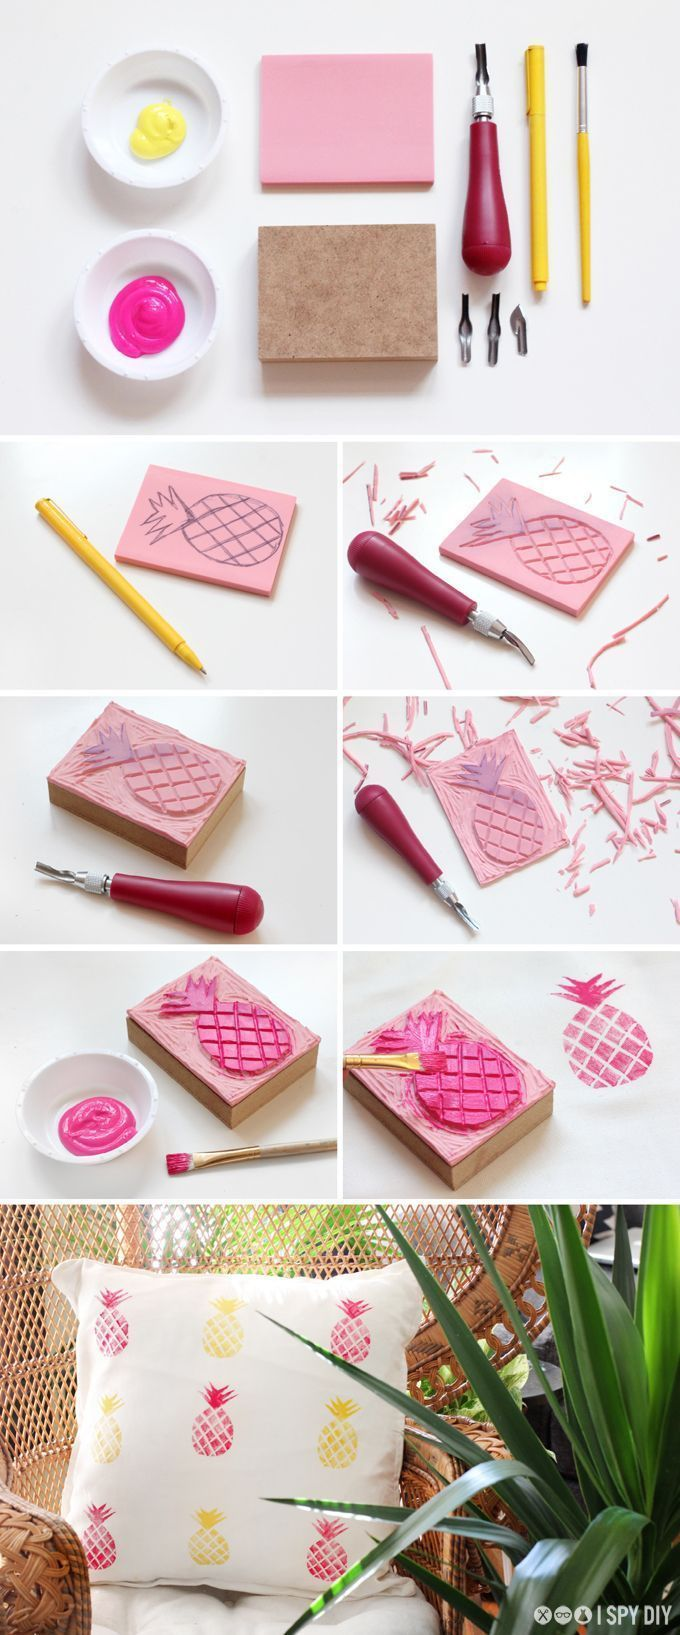 Pin by apple on awesome crafts and diyus pinterest diy